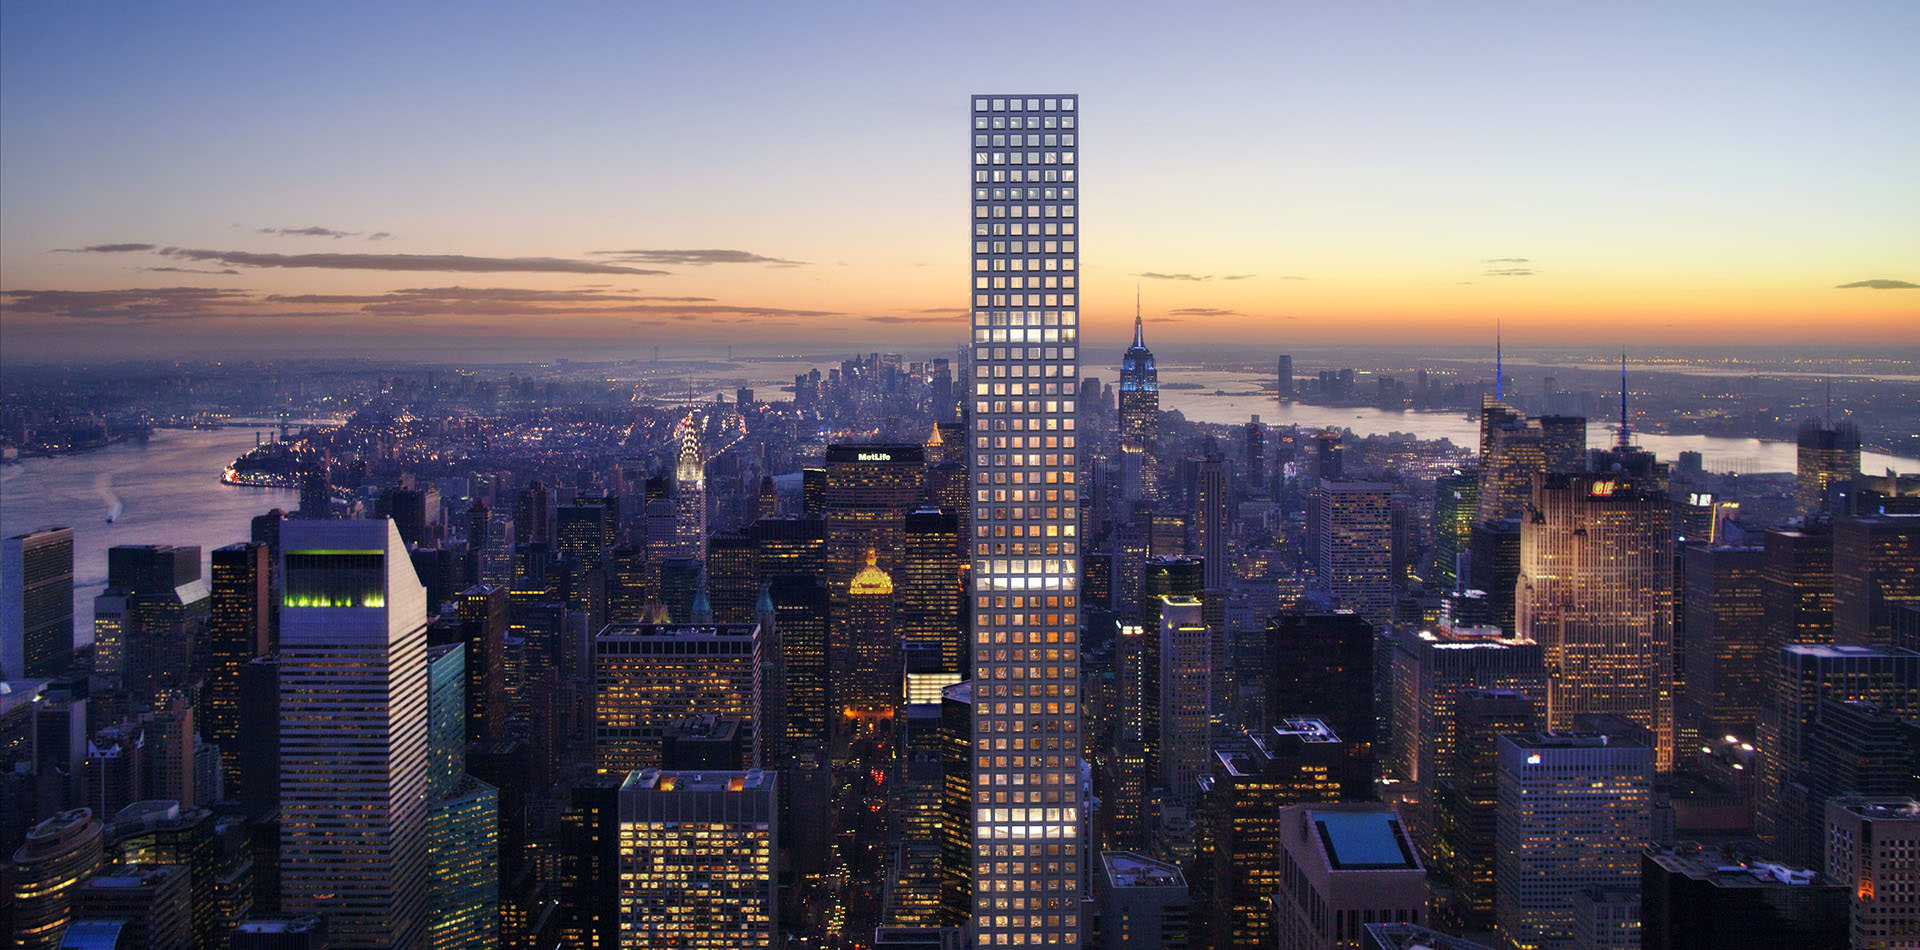 Nighttime Skyline - 432 park avenue the tallest residential building in the western hemisphere